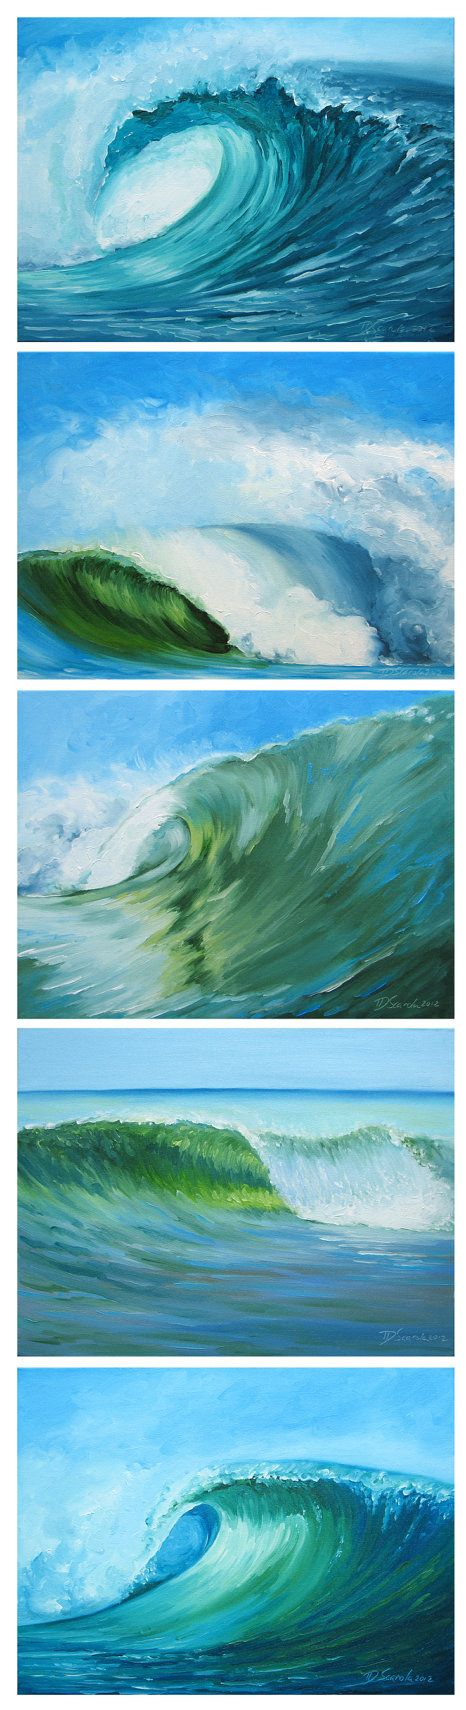 GICLEE ~ 8 1/2 x 11 Fine art reproduction prints of 5 of my original wave paintings, as shown in the series. Specification: -acid free, archival -pure pigment inks rated at 200 yrs Comes packaged in a protective crystal clear sleeve. Titled & Signed